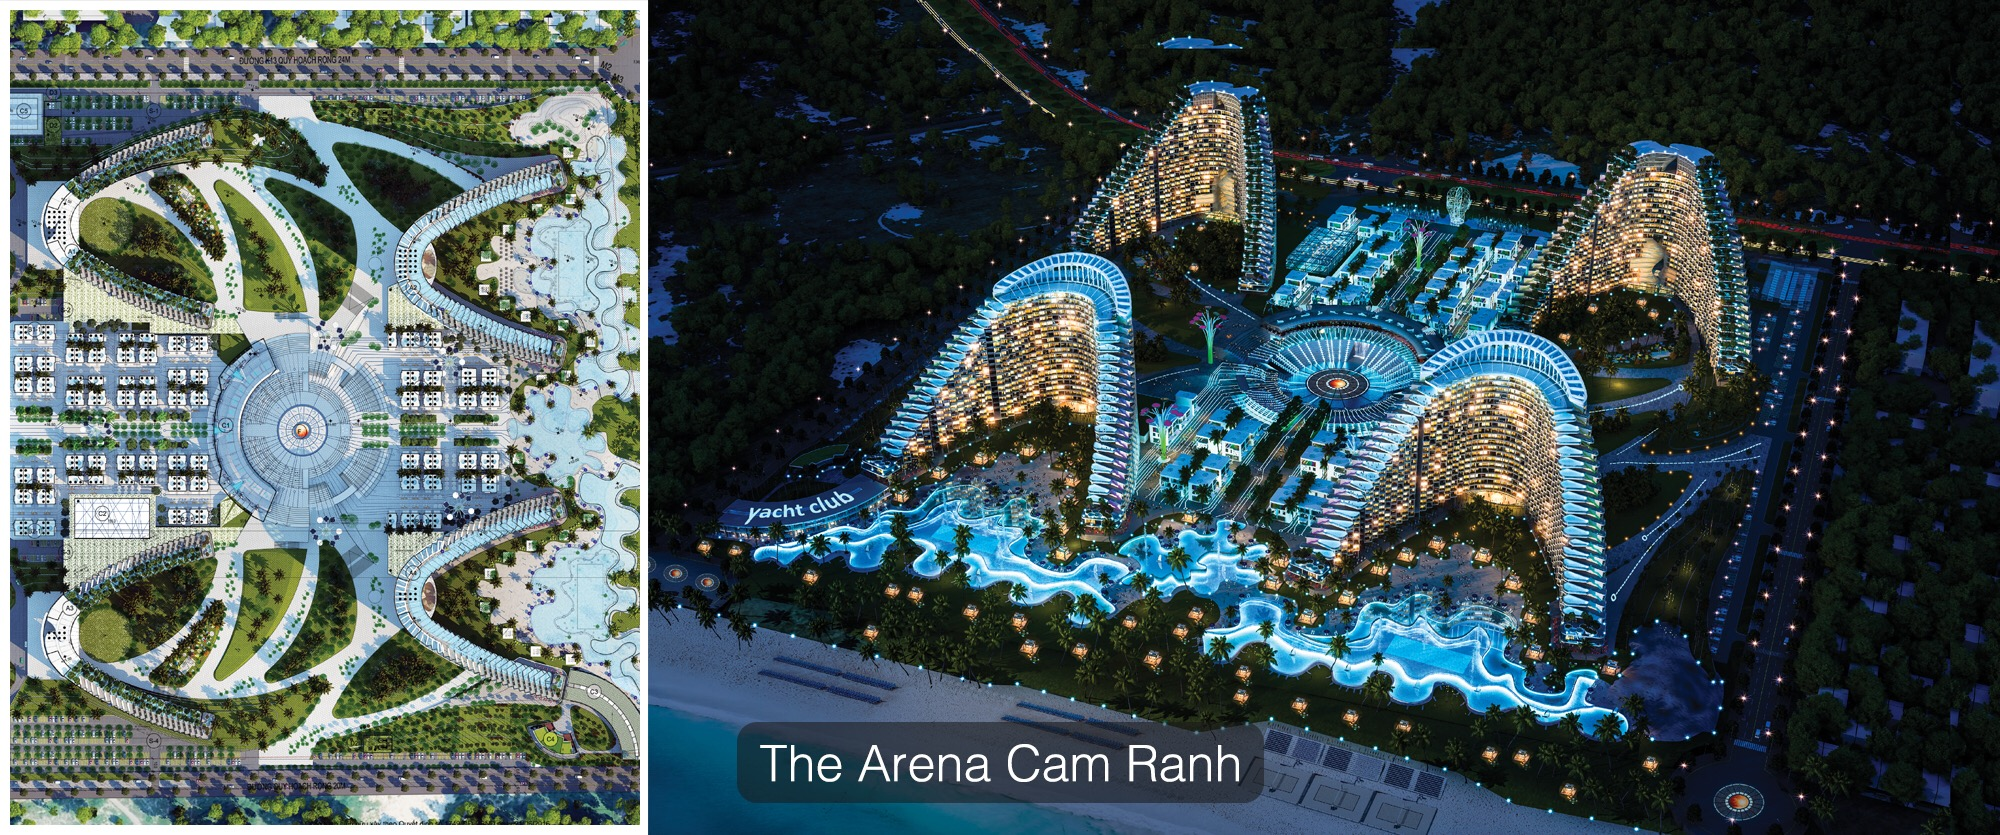 The Arena - Cam Ranh